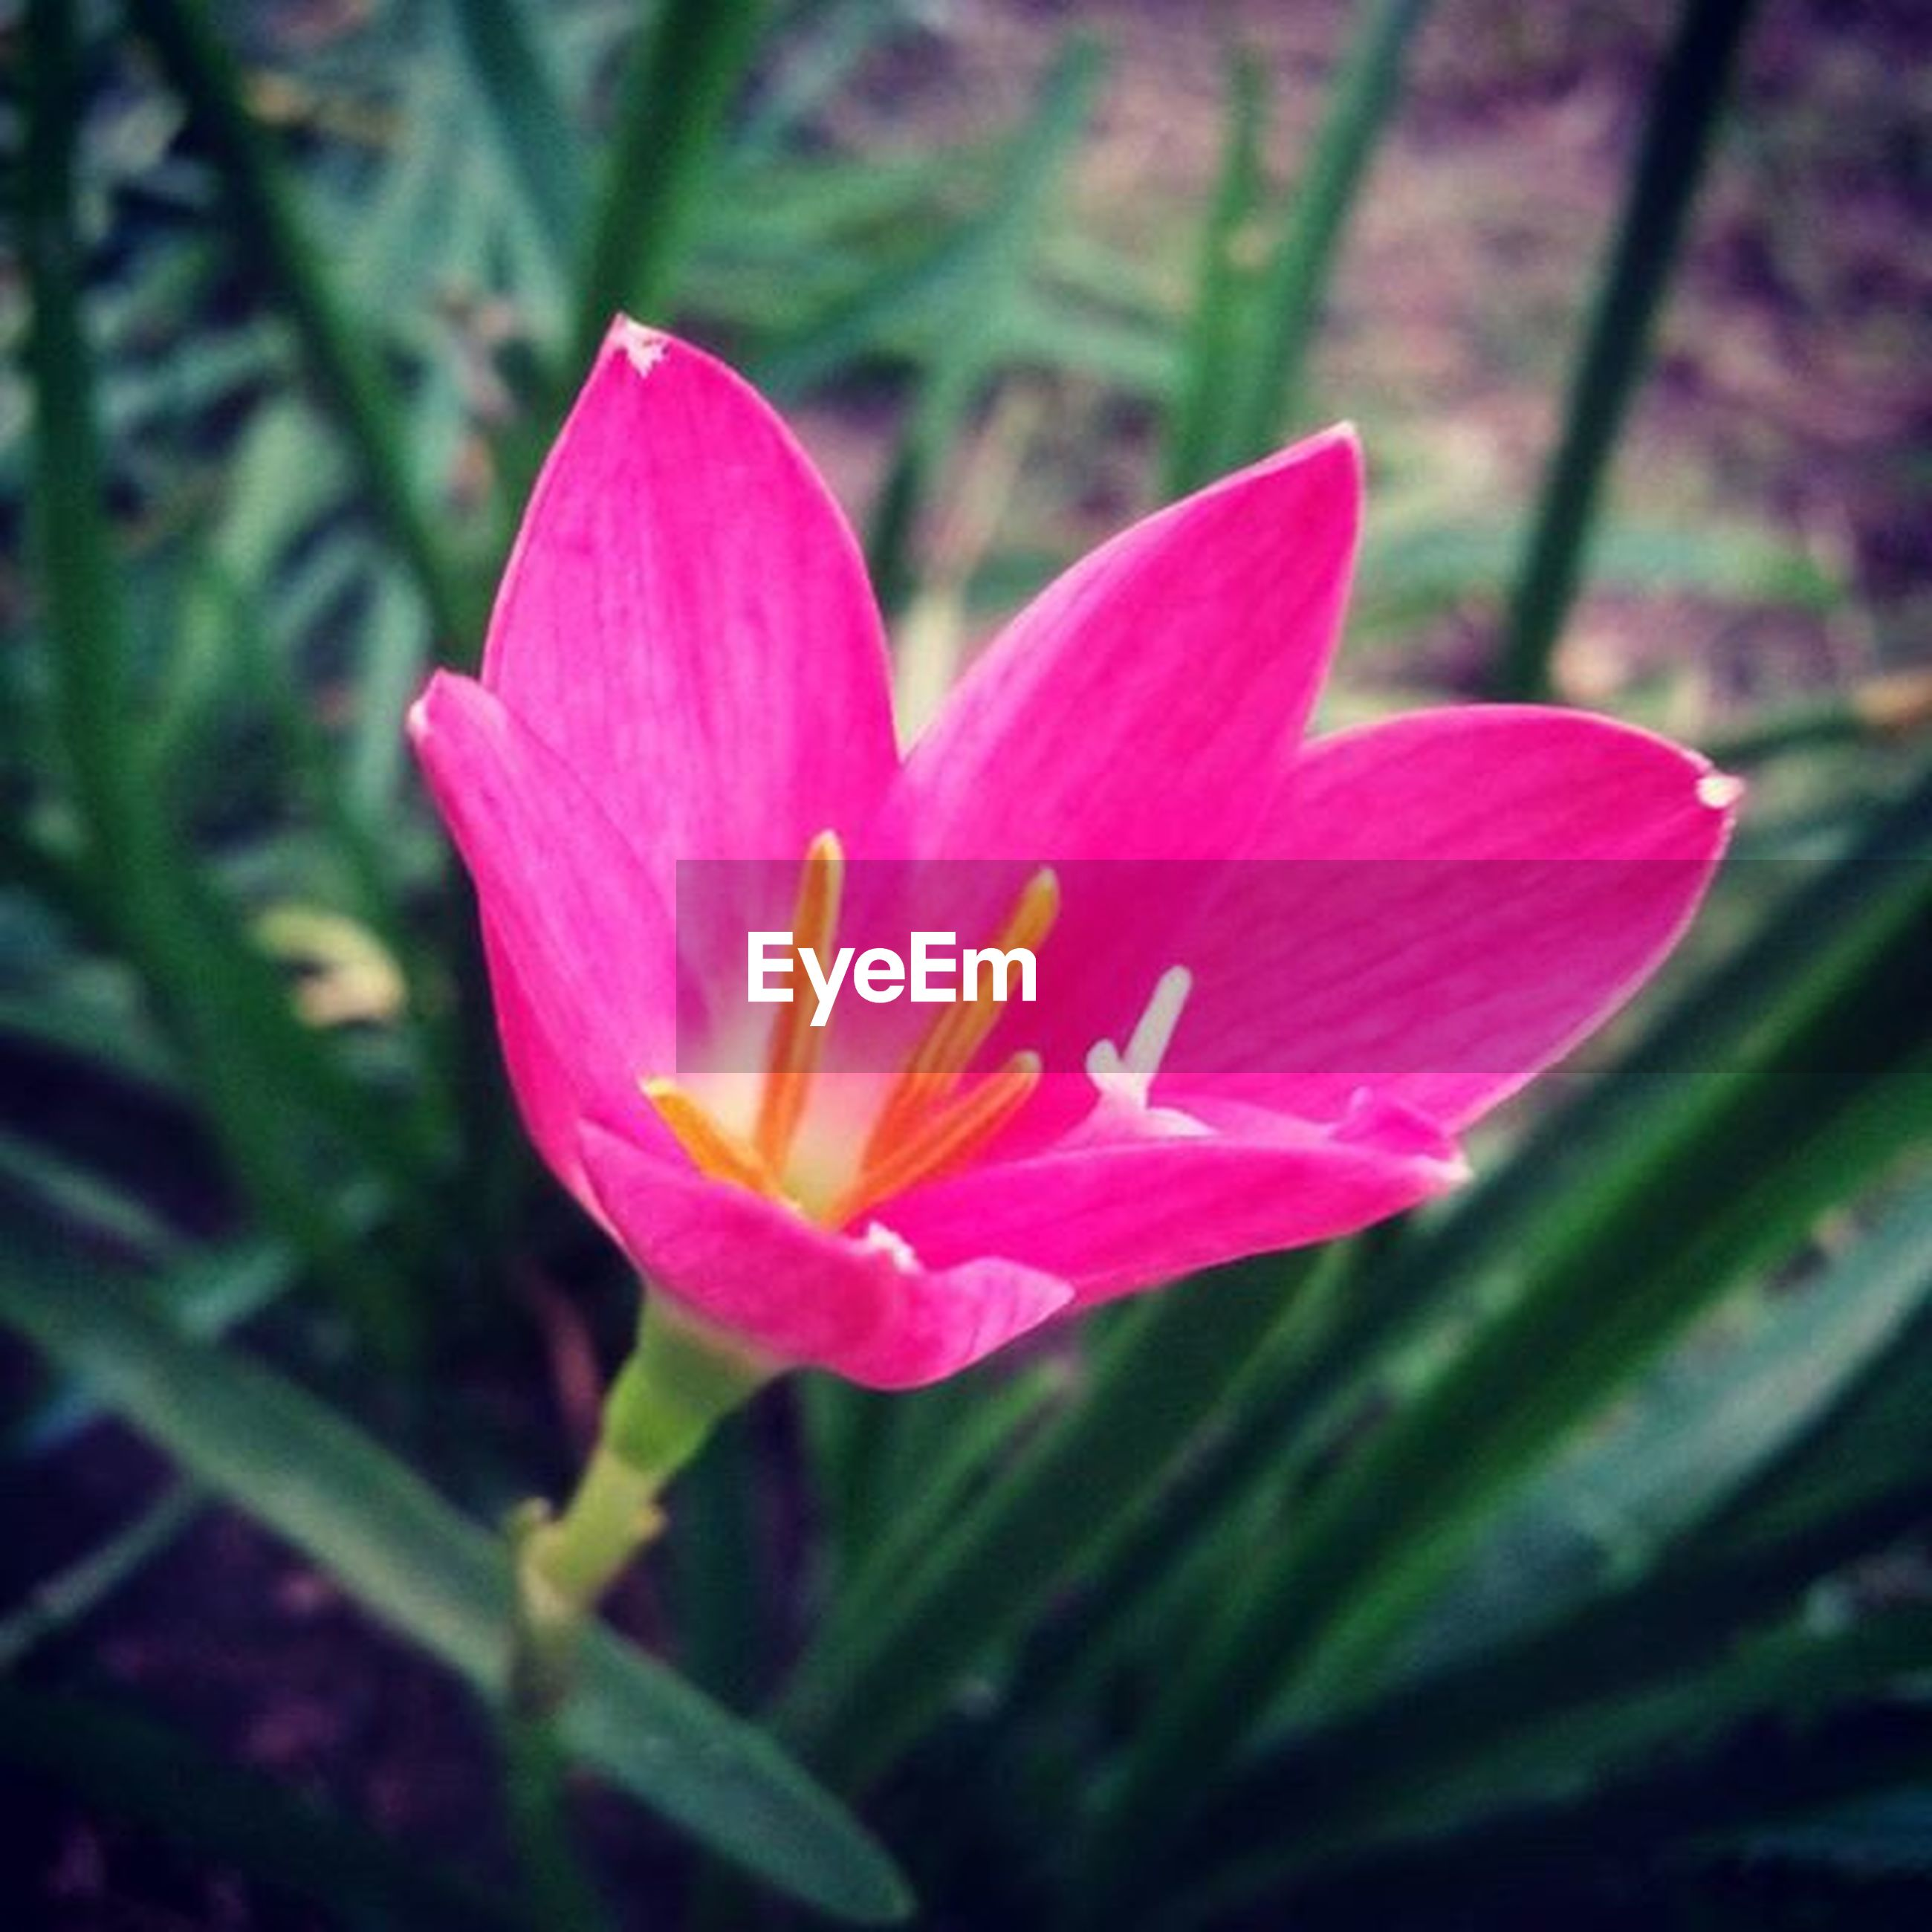 flower, petal, flower head, freshness, fragility, single flower, growth, beauty in nature, pink color, close-up, blooming, focus on foreground, nature, plant, in bloom, stamen, pollen, stem, outdoors, blossom